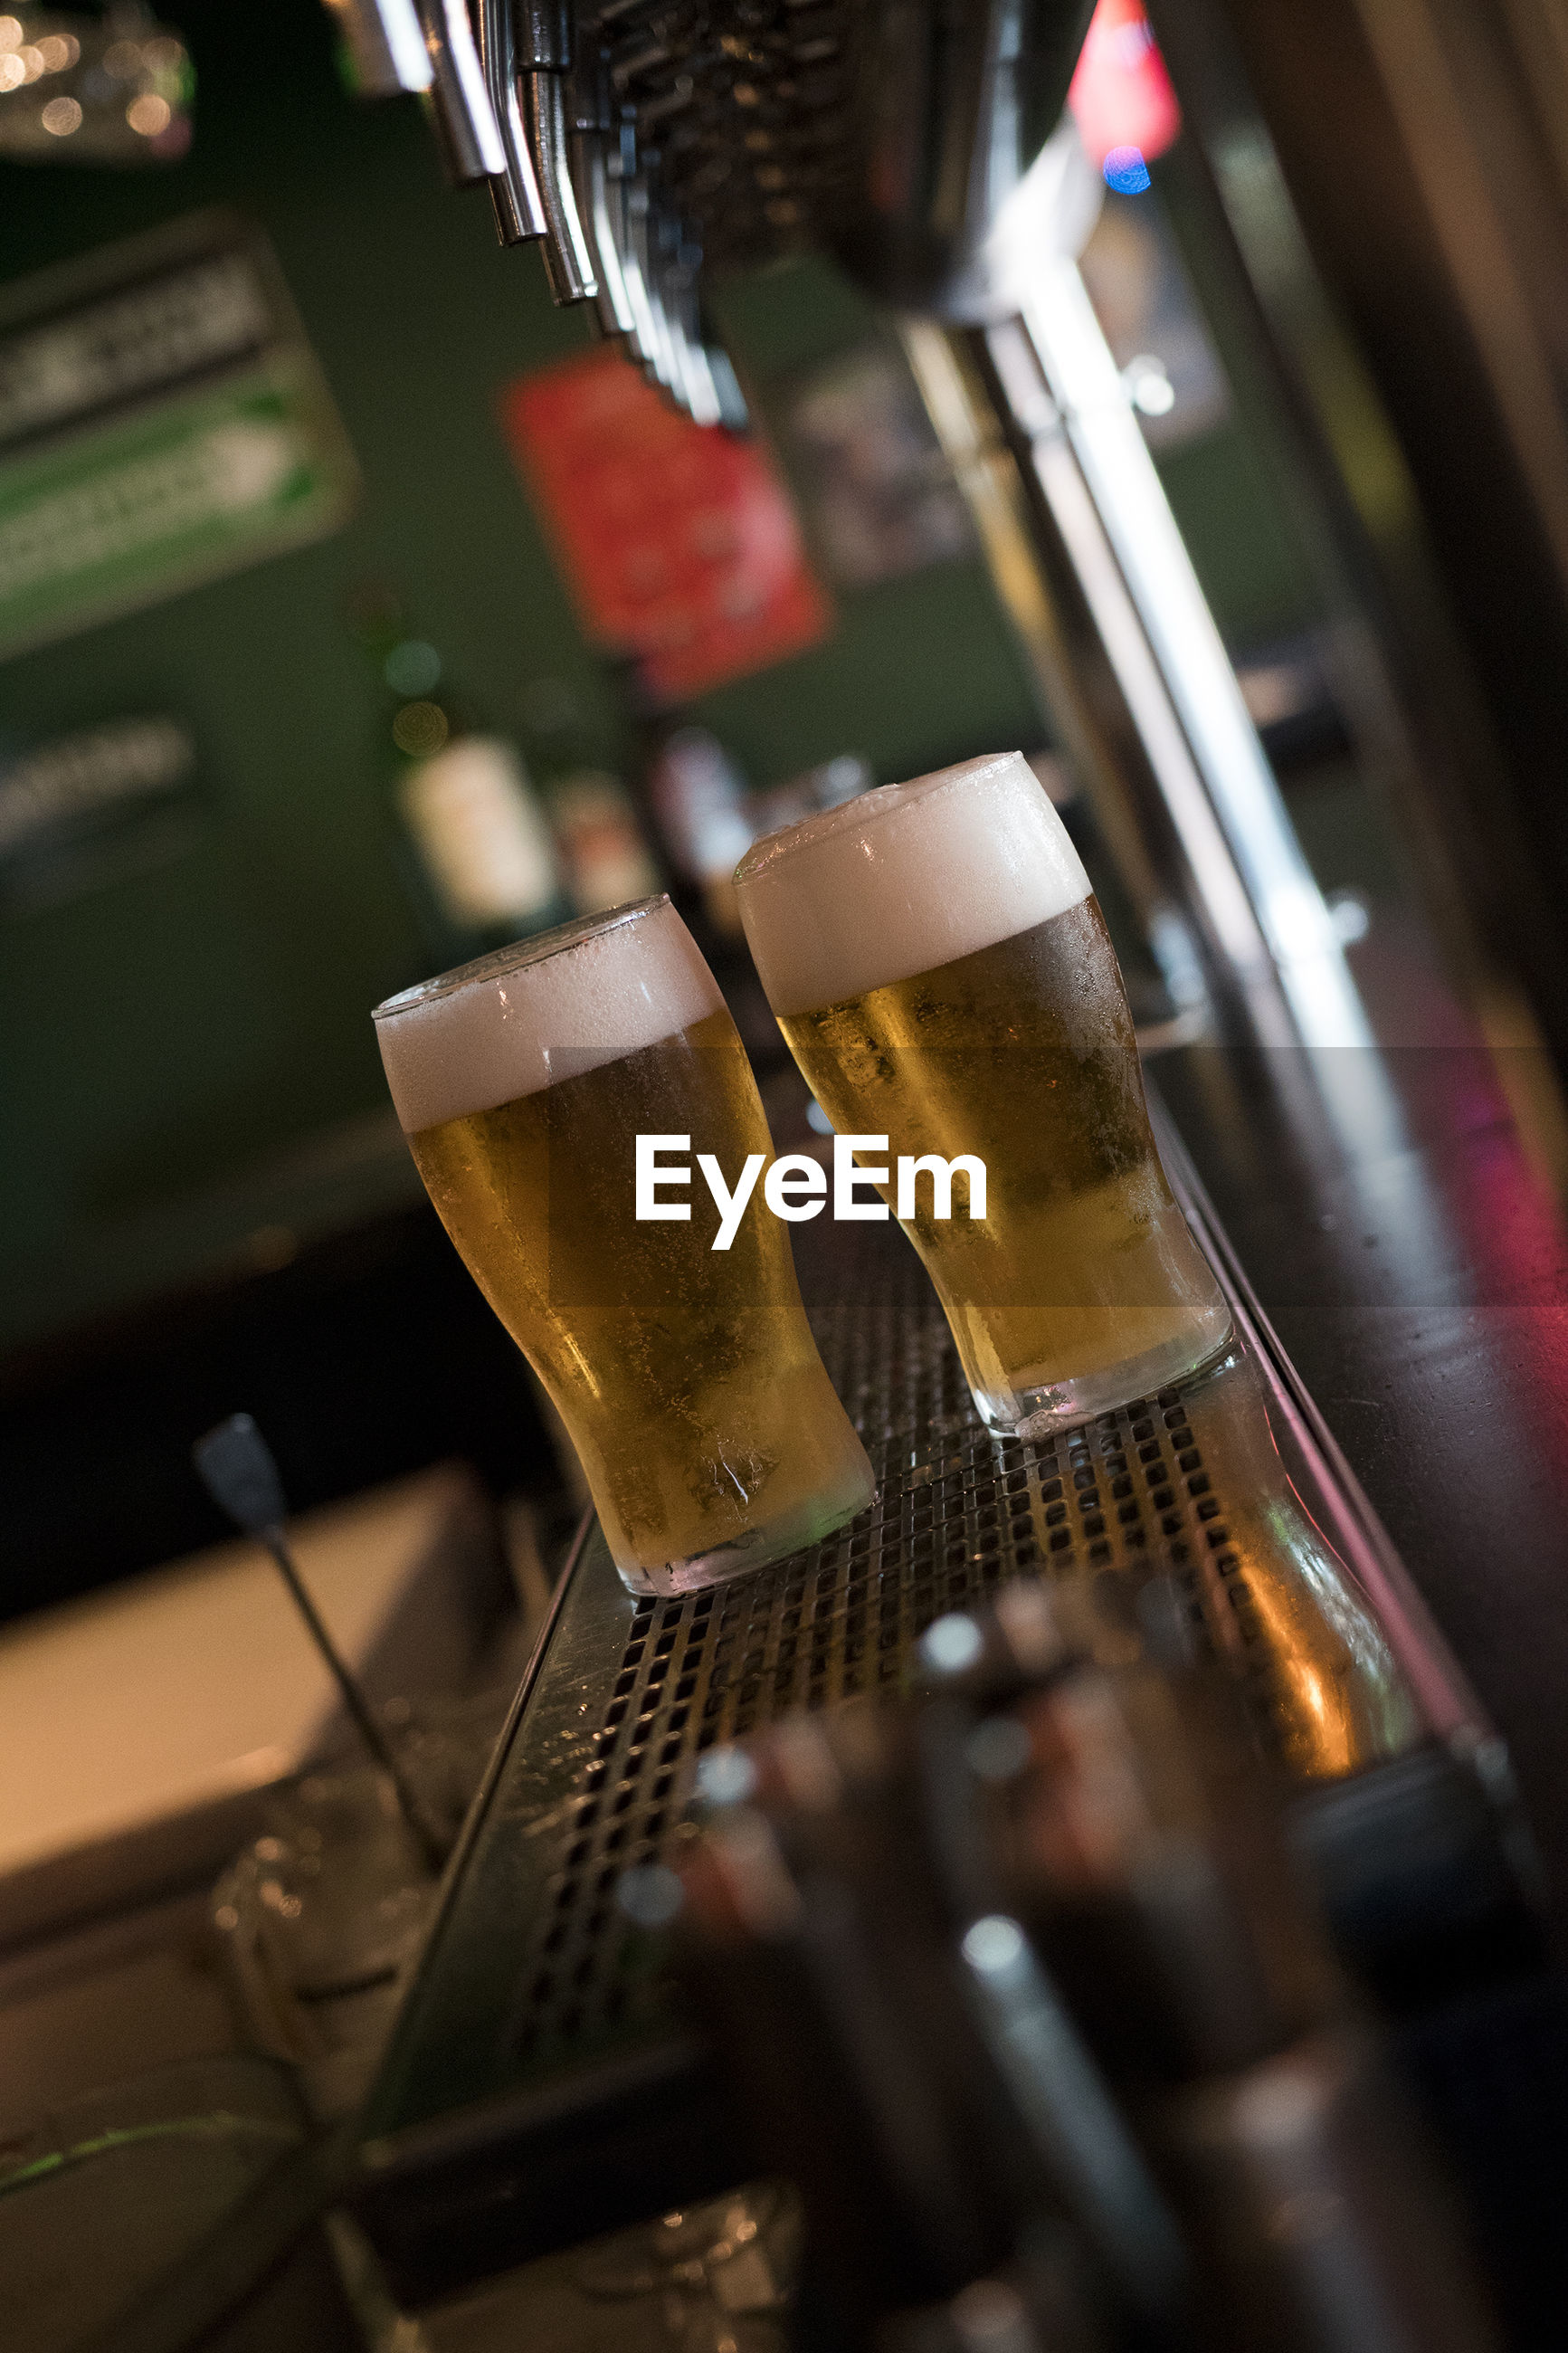 Beer in glasses on bar counter